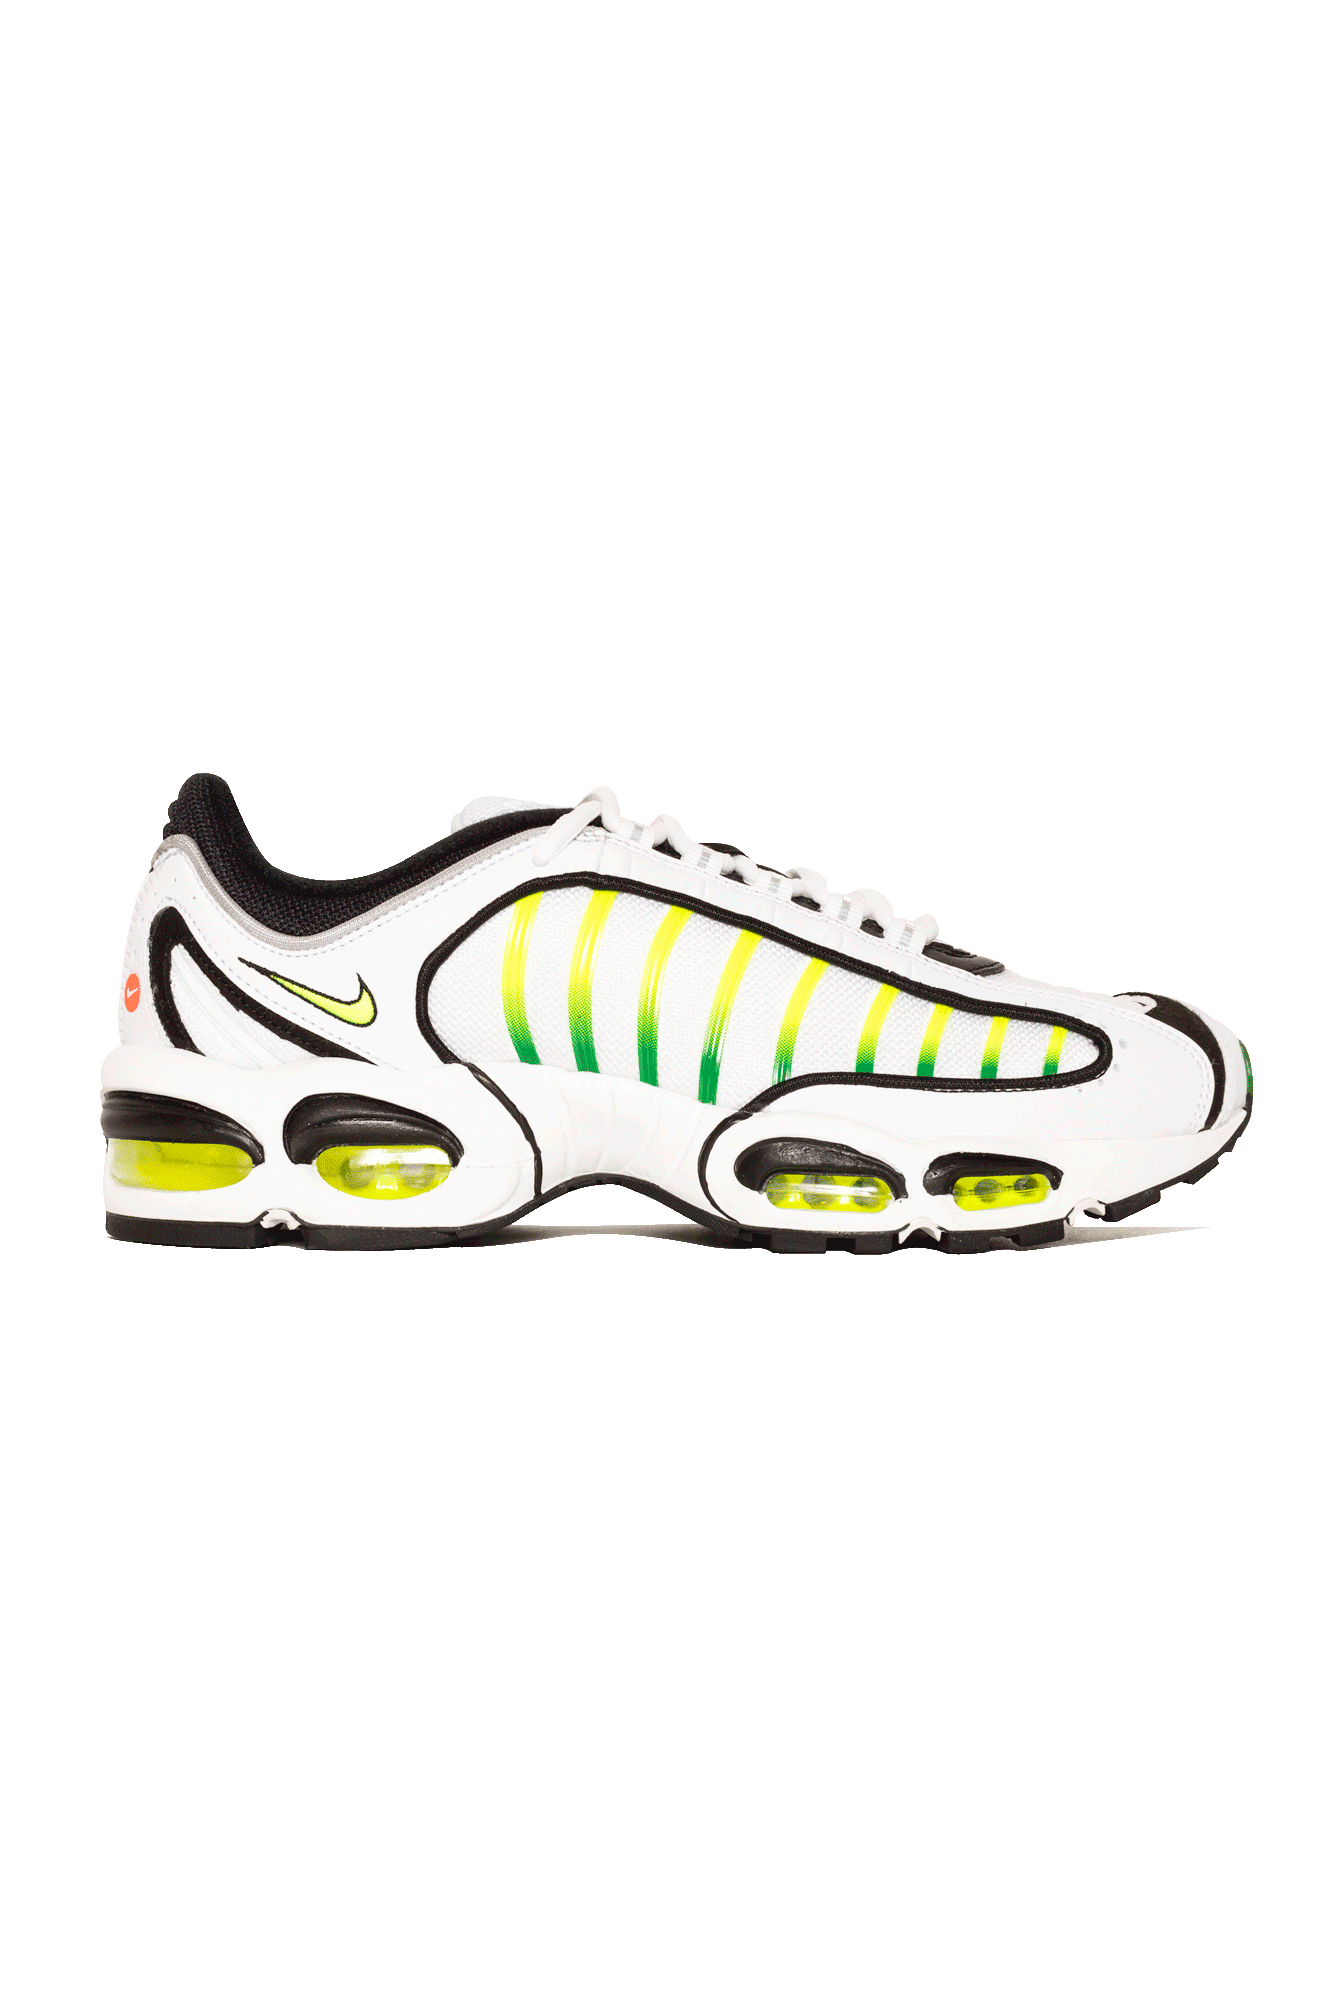 Sneakers Nike Air Max Tailwind IV White - One Block Down